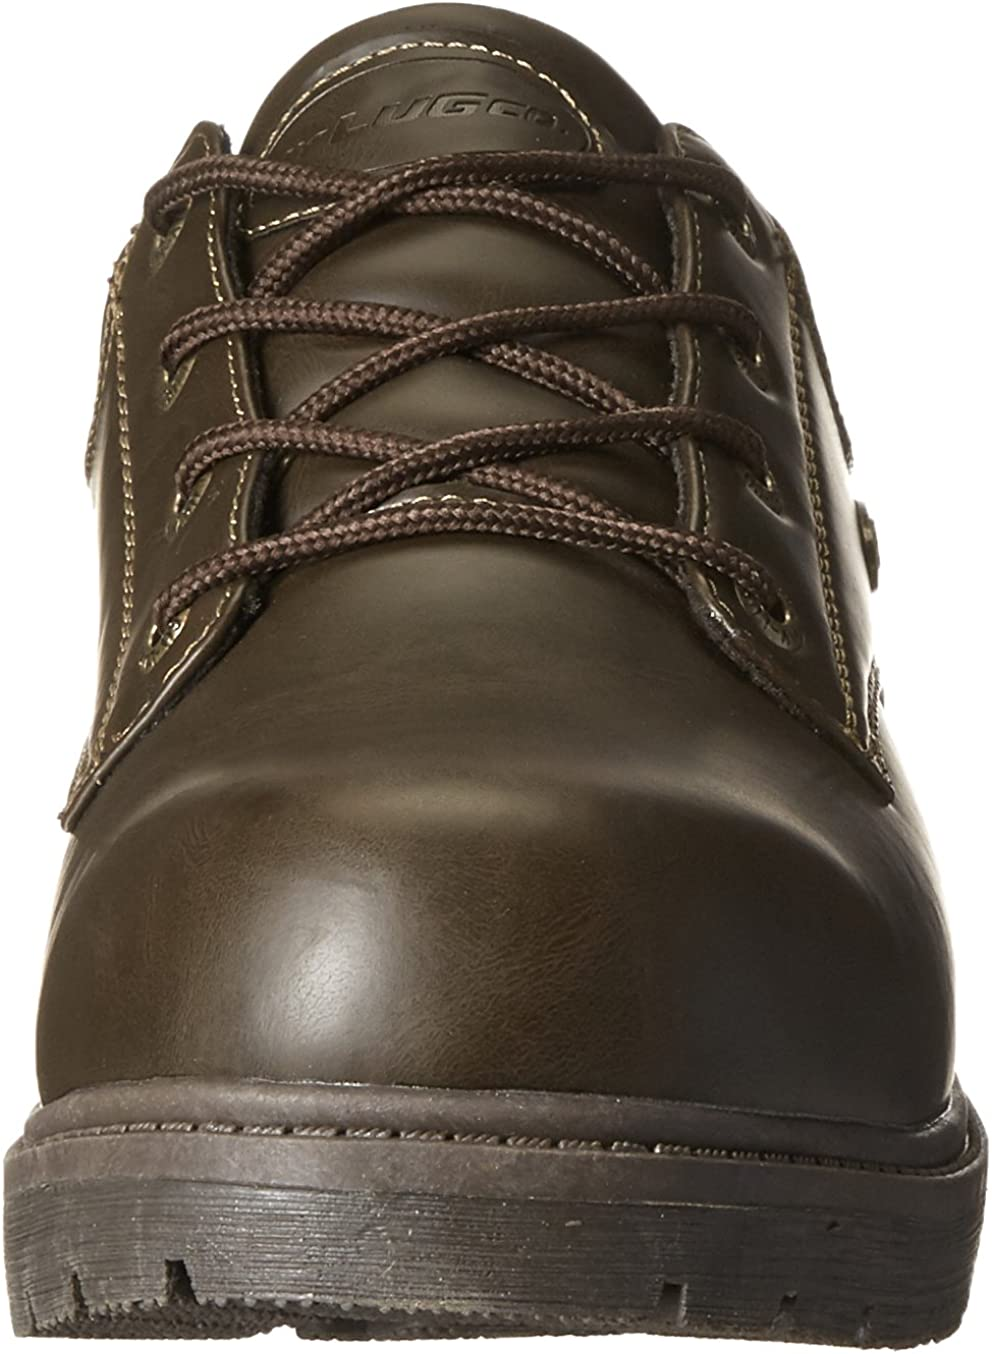 Lugz Mens Warrant Lo SR Boot